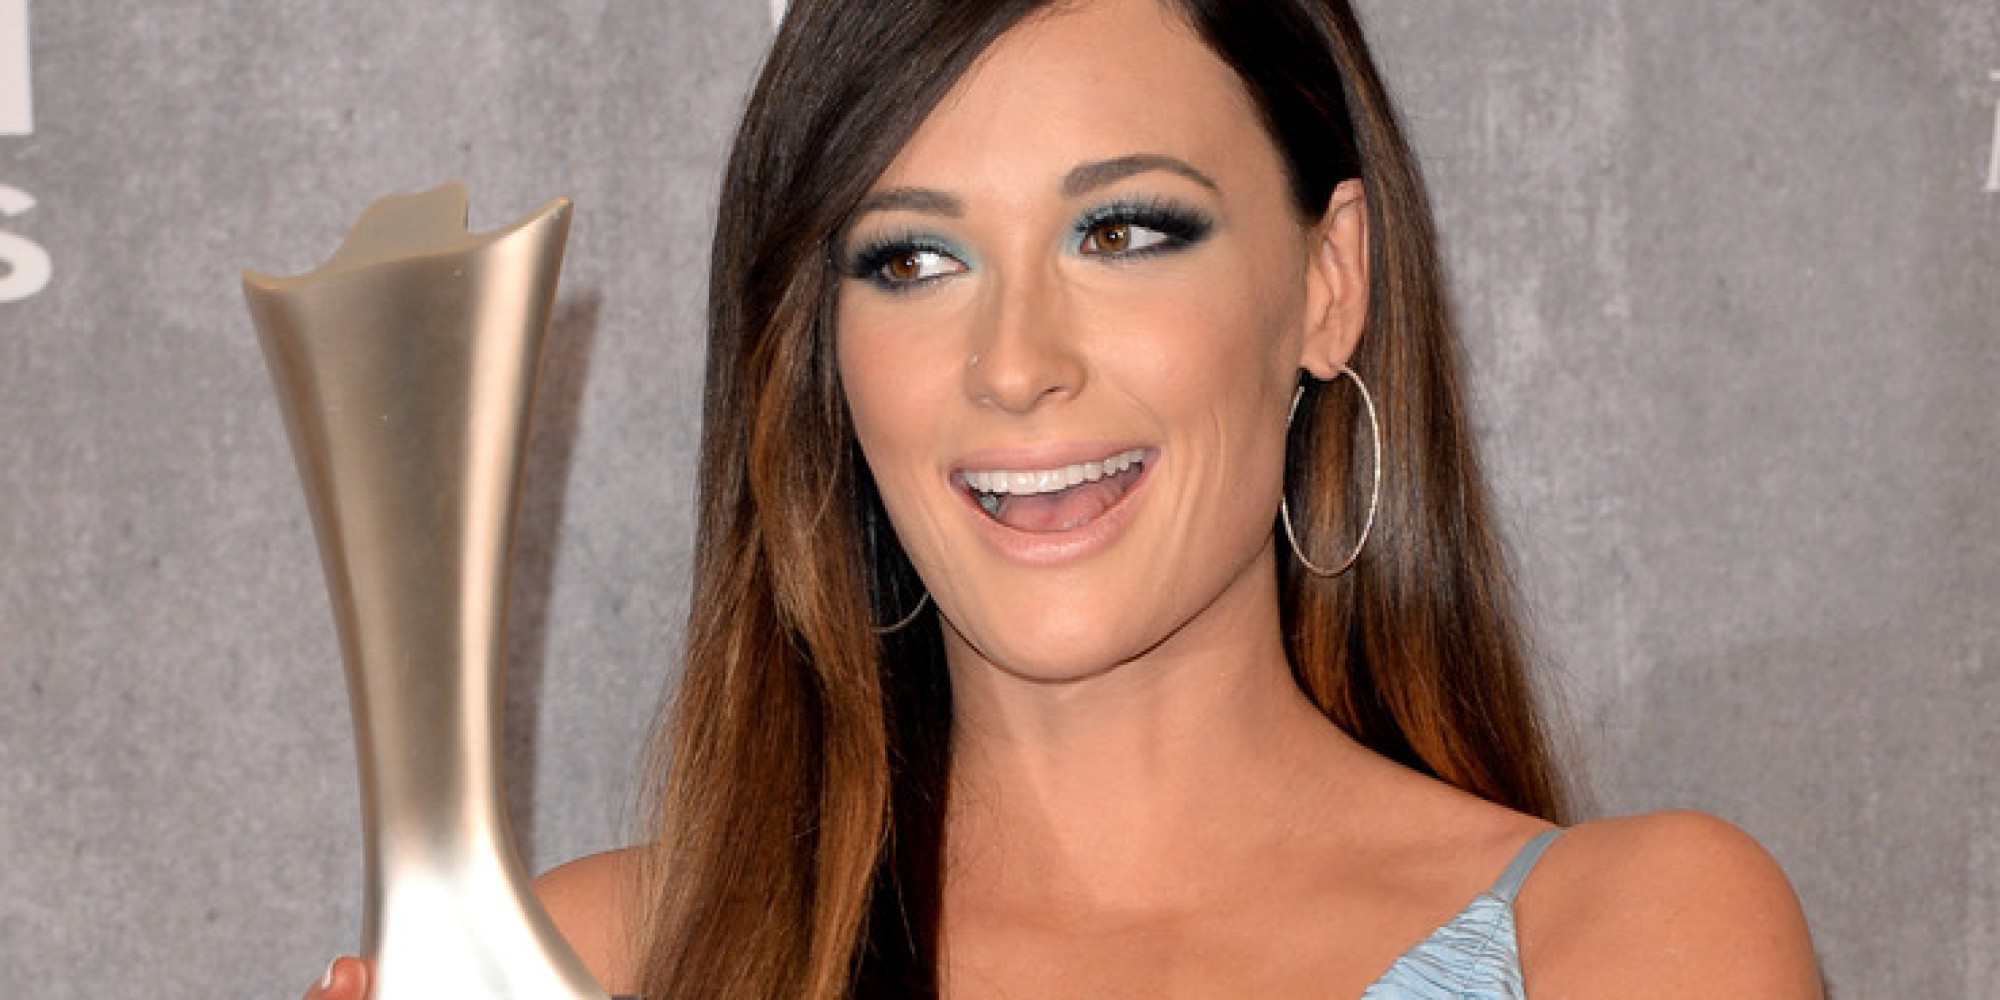 Kacey Musgraves: Kacey Musgraves Would Have Been Killed For Embracing Gays